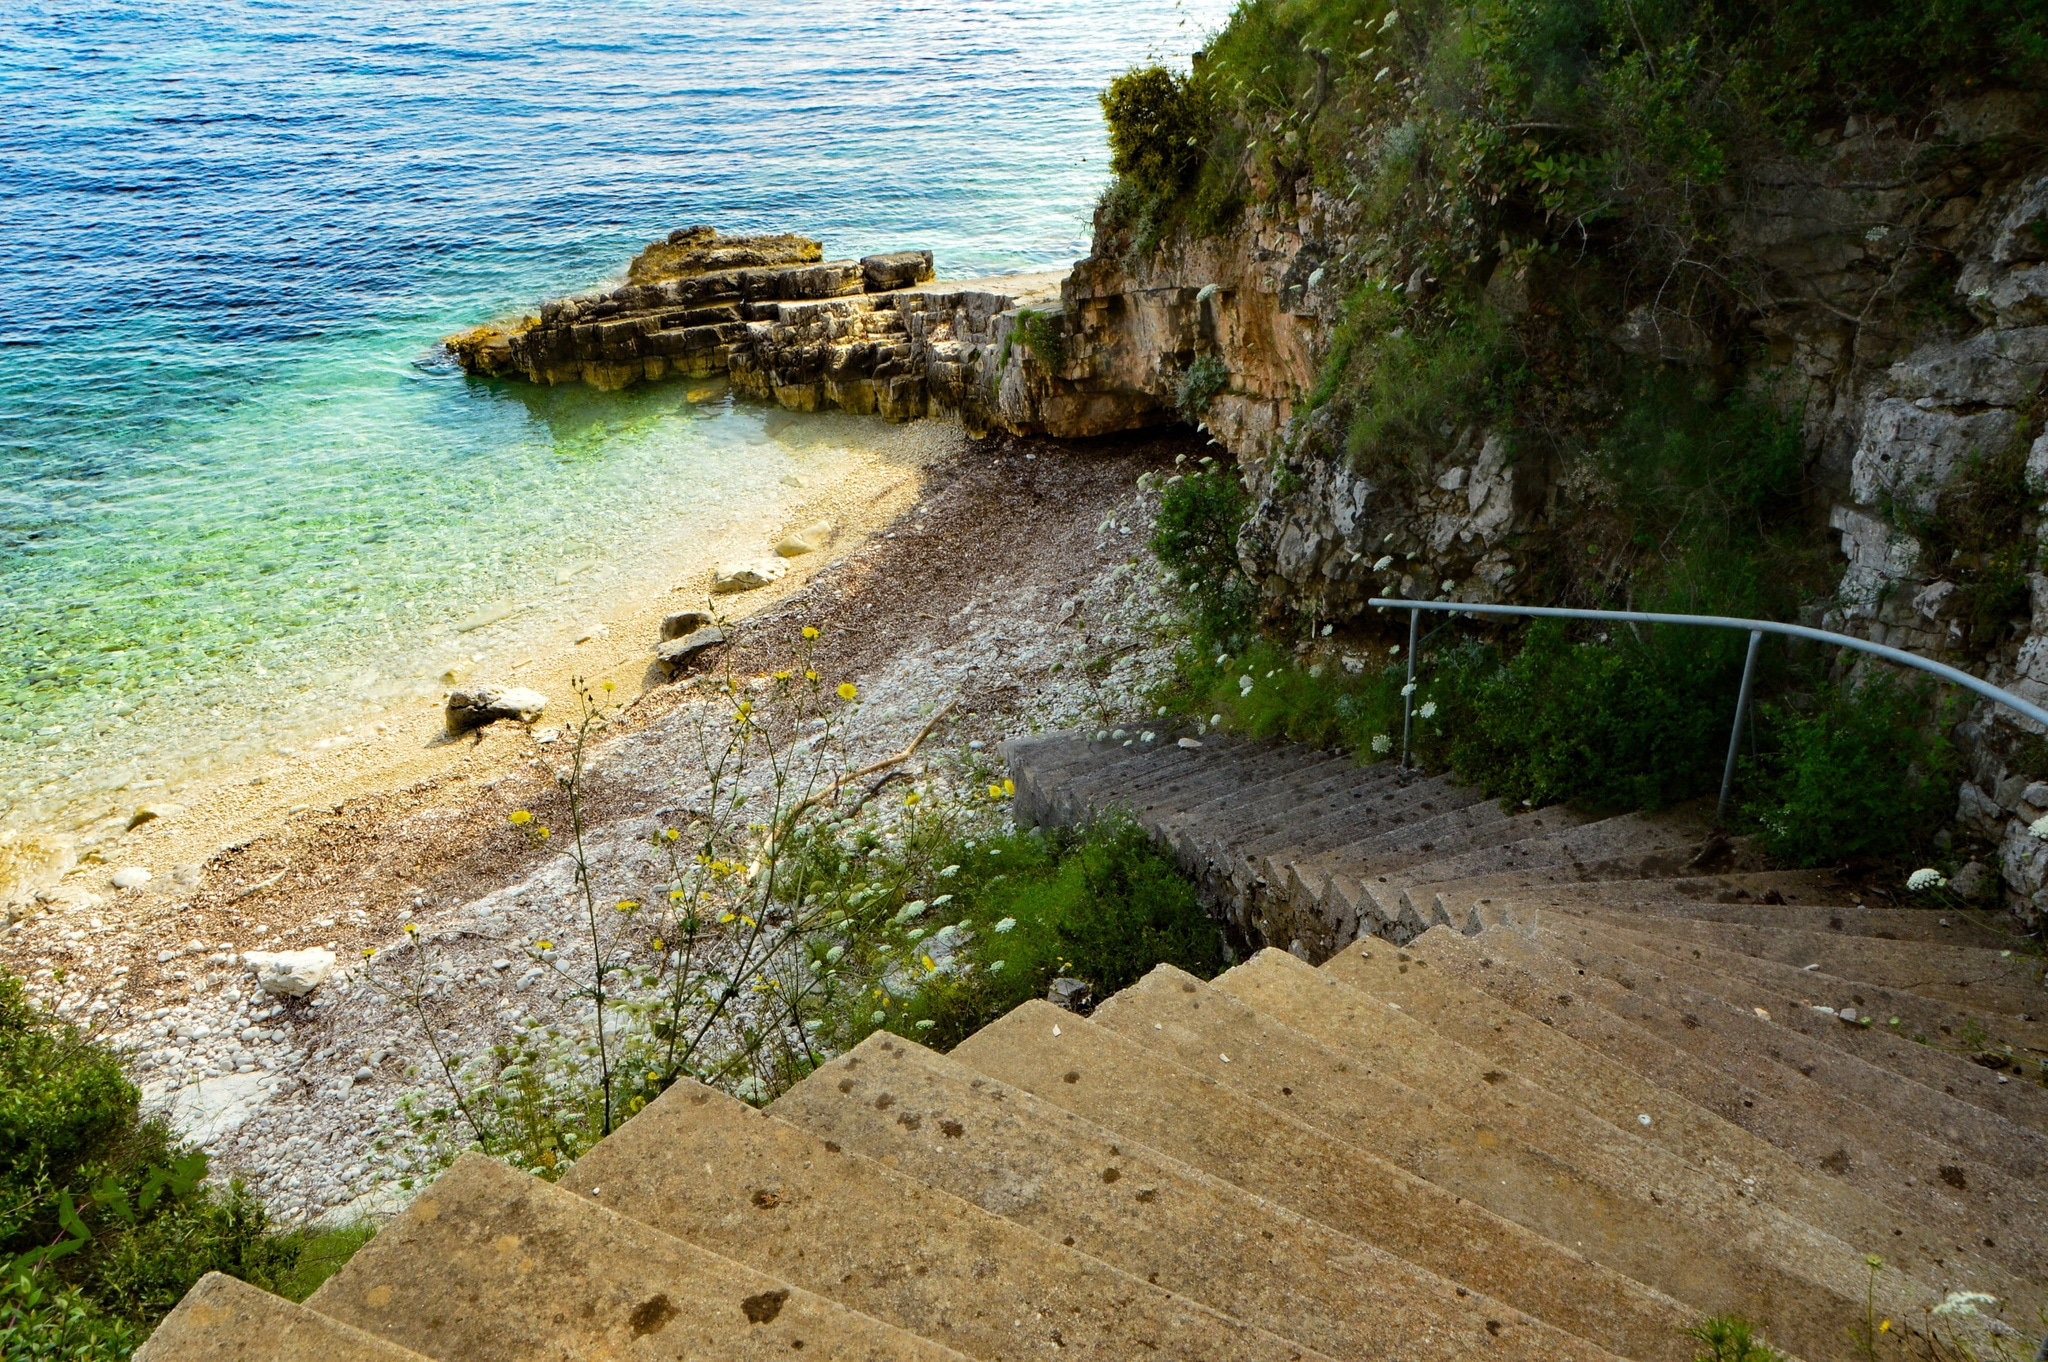 greece_paxos-villa-glaros-secluded-beach-4